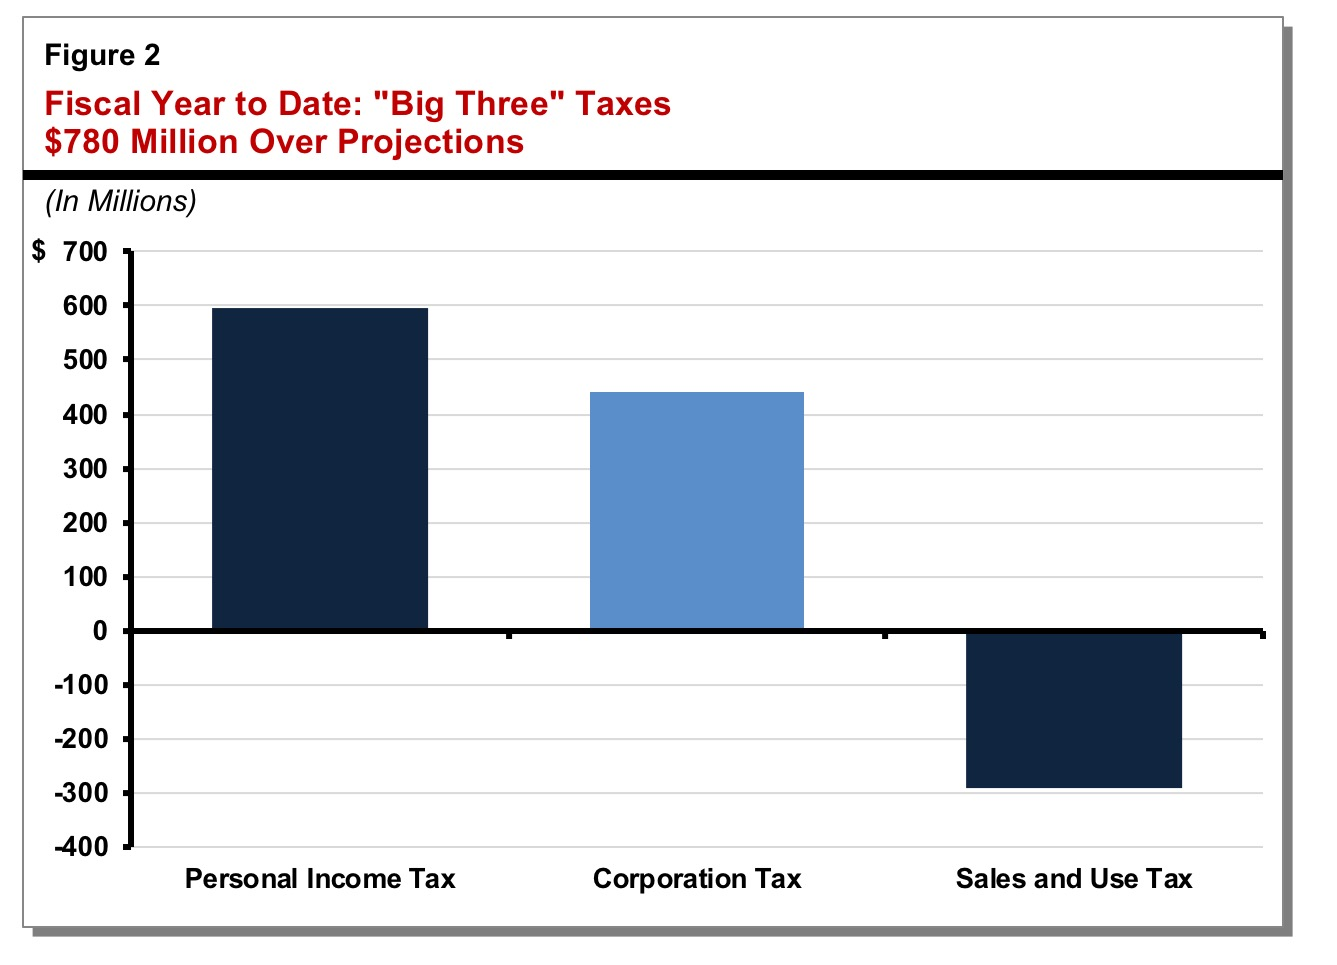 Figure shows  that for fiscal year to date, combined income and sales taxes are $780 million above projections.